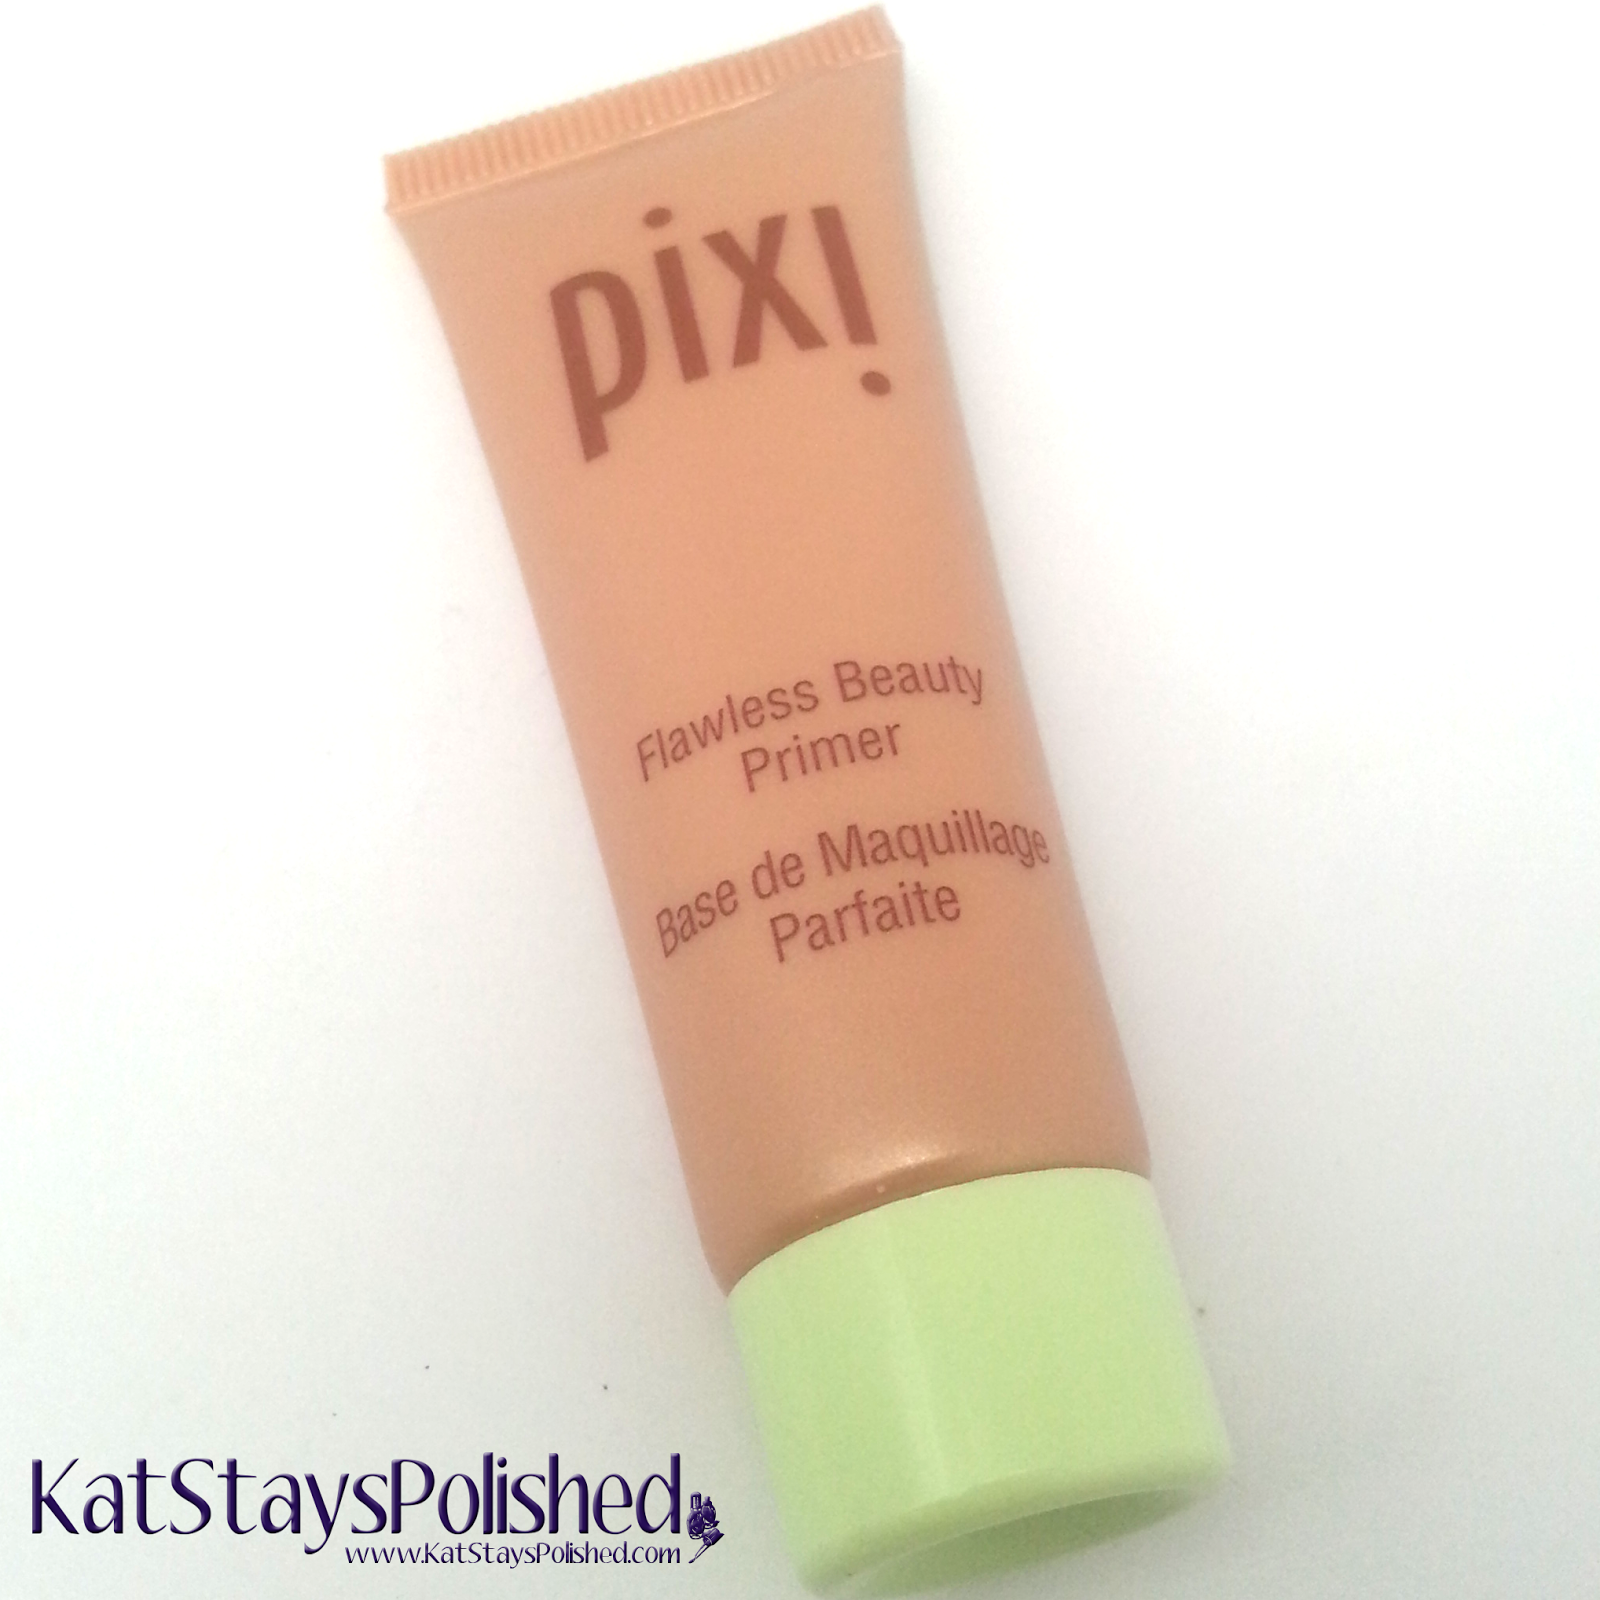 Ipsy Glam Bag: March 2014 - Pixi Flawless Beauty Primer | Kat Stays Polished